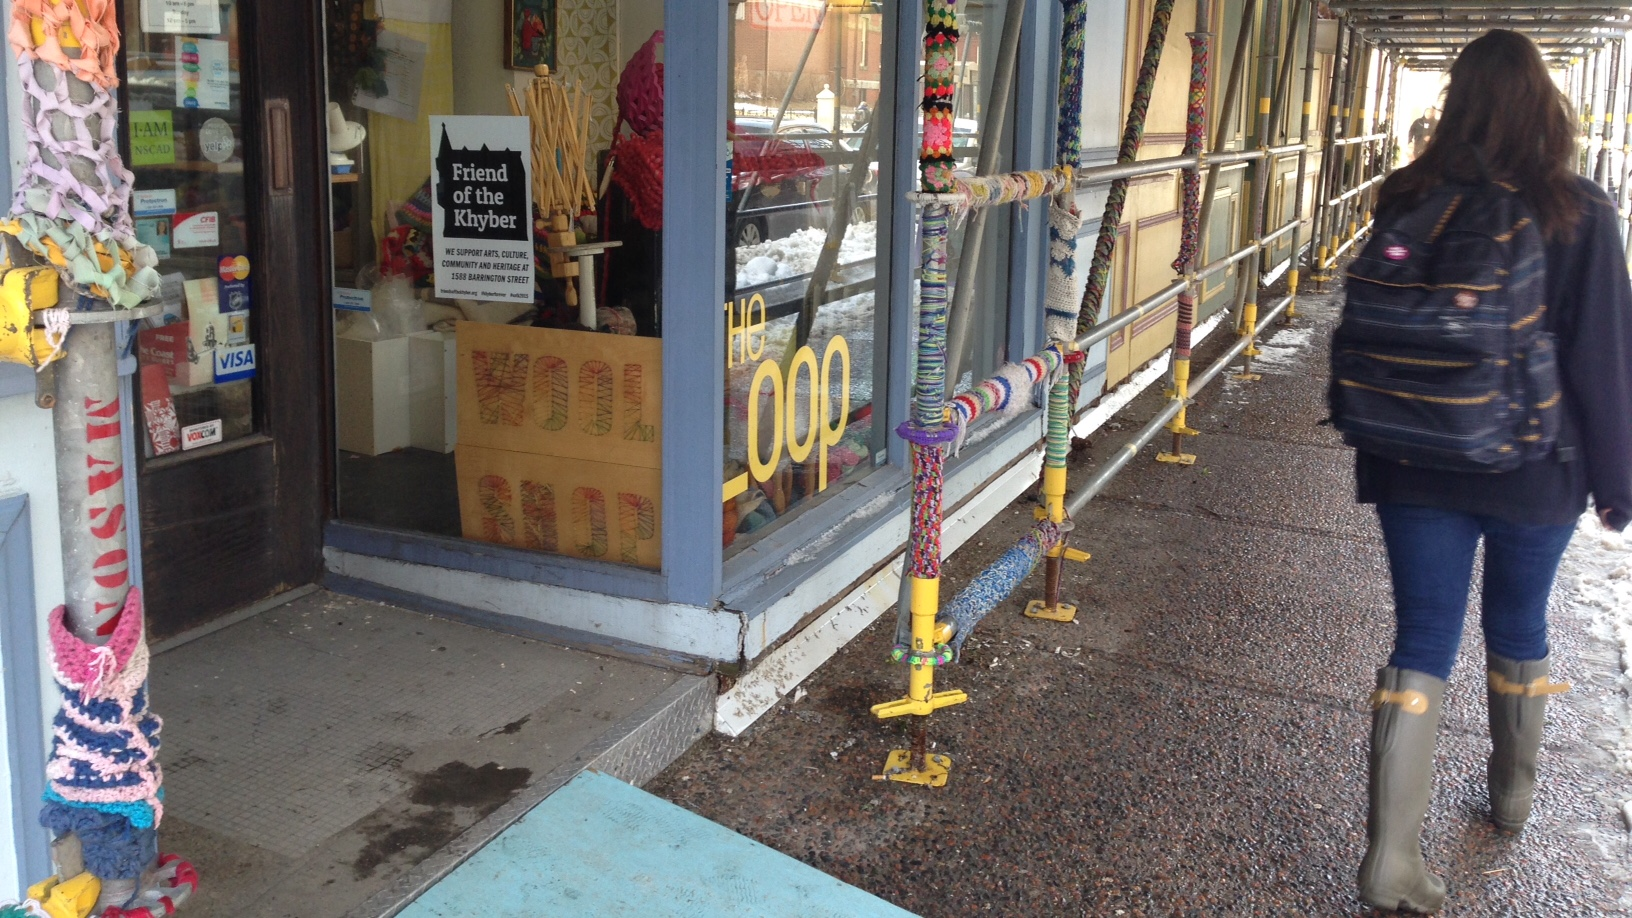 There has been scaffolding outside the Loop for some time.